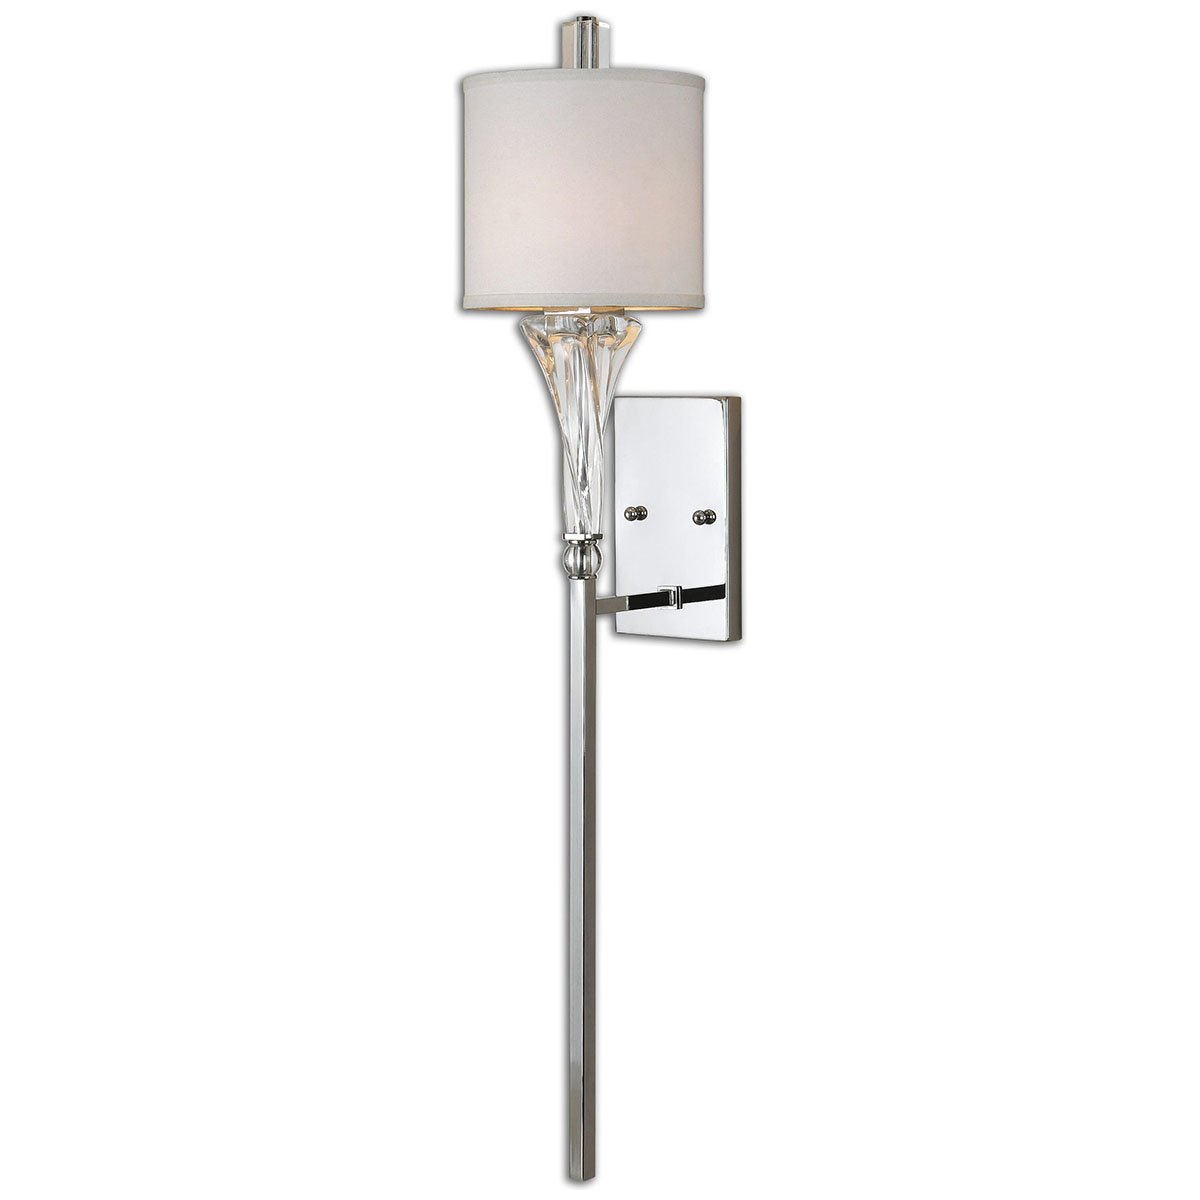 Amazon.com: Uttermost 22495 Grancona 1 Light Wall Sconce, Chrome: Home U0026  Kitchen Part 52